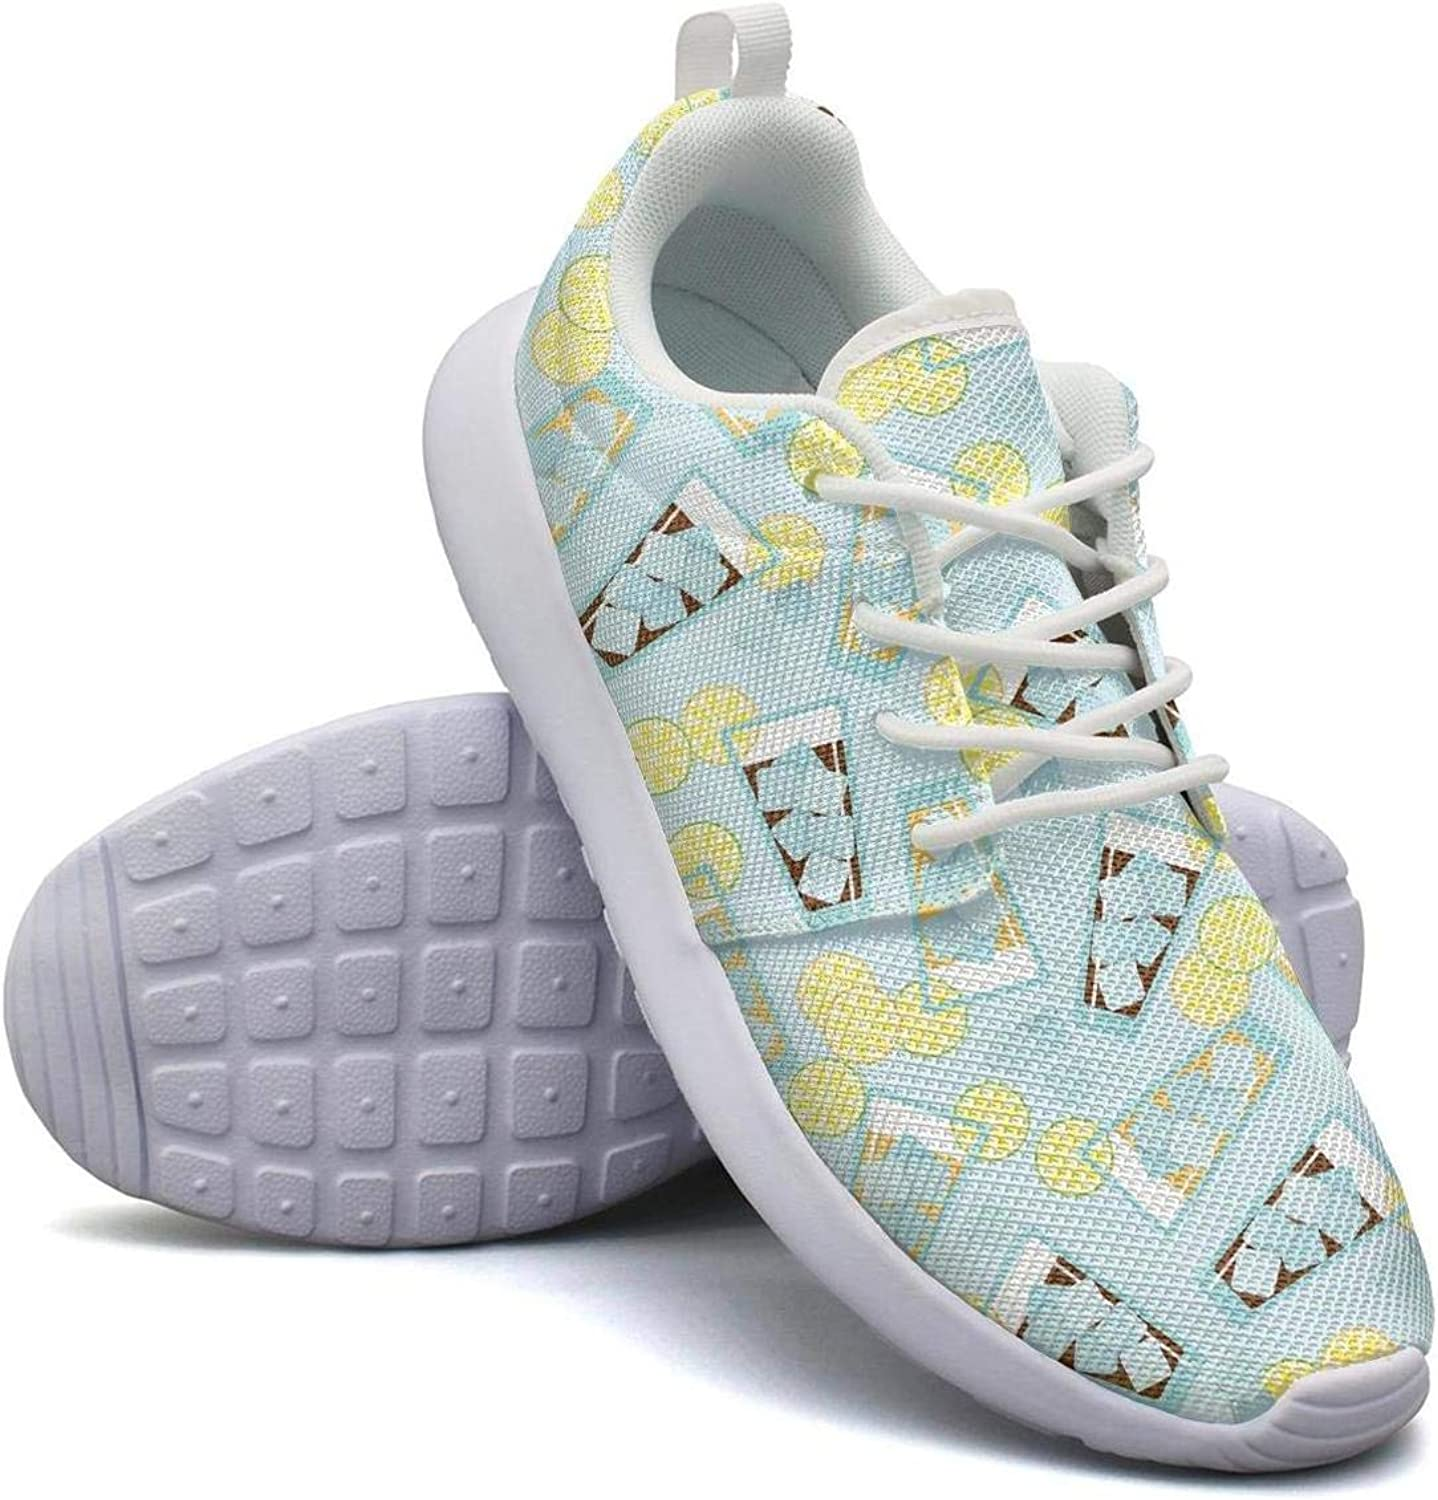 CHALi99 Breathable Female's Lightweight Mesh shoes Yellow Lemon Cartoon Sneakers Running Quick Dry